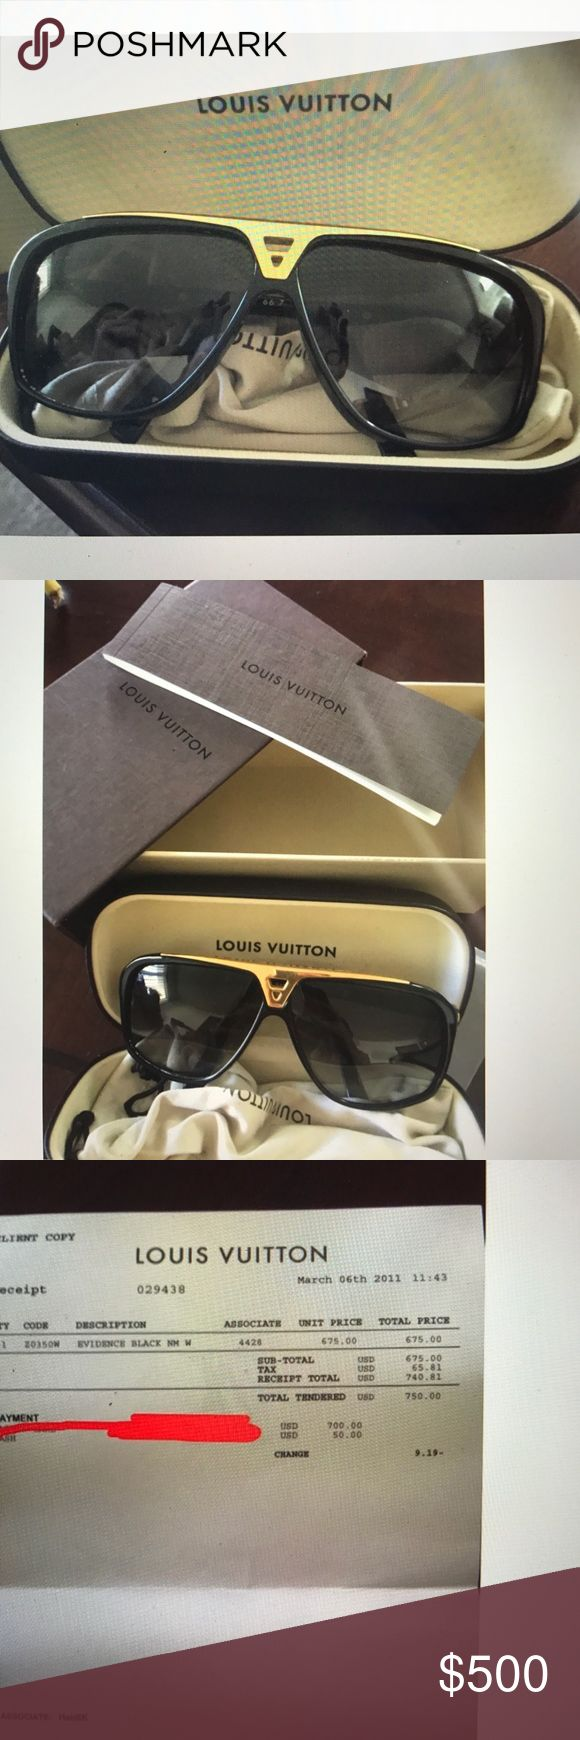 Louis Vuitton evidence sunglasses Barely used, Louis Vuitton evidence sunglasses. In very good condition. Very stylish and great for both men and women. I am the original owner and bought it directly from the retail store. Louis Vuitton Accessories Glasses